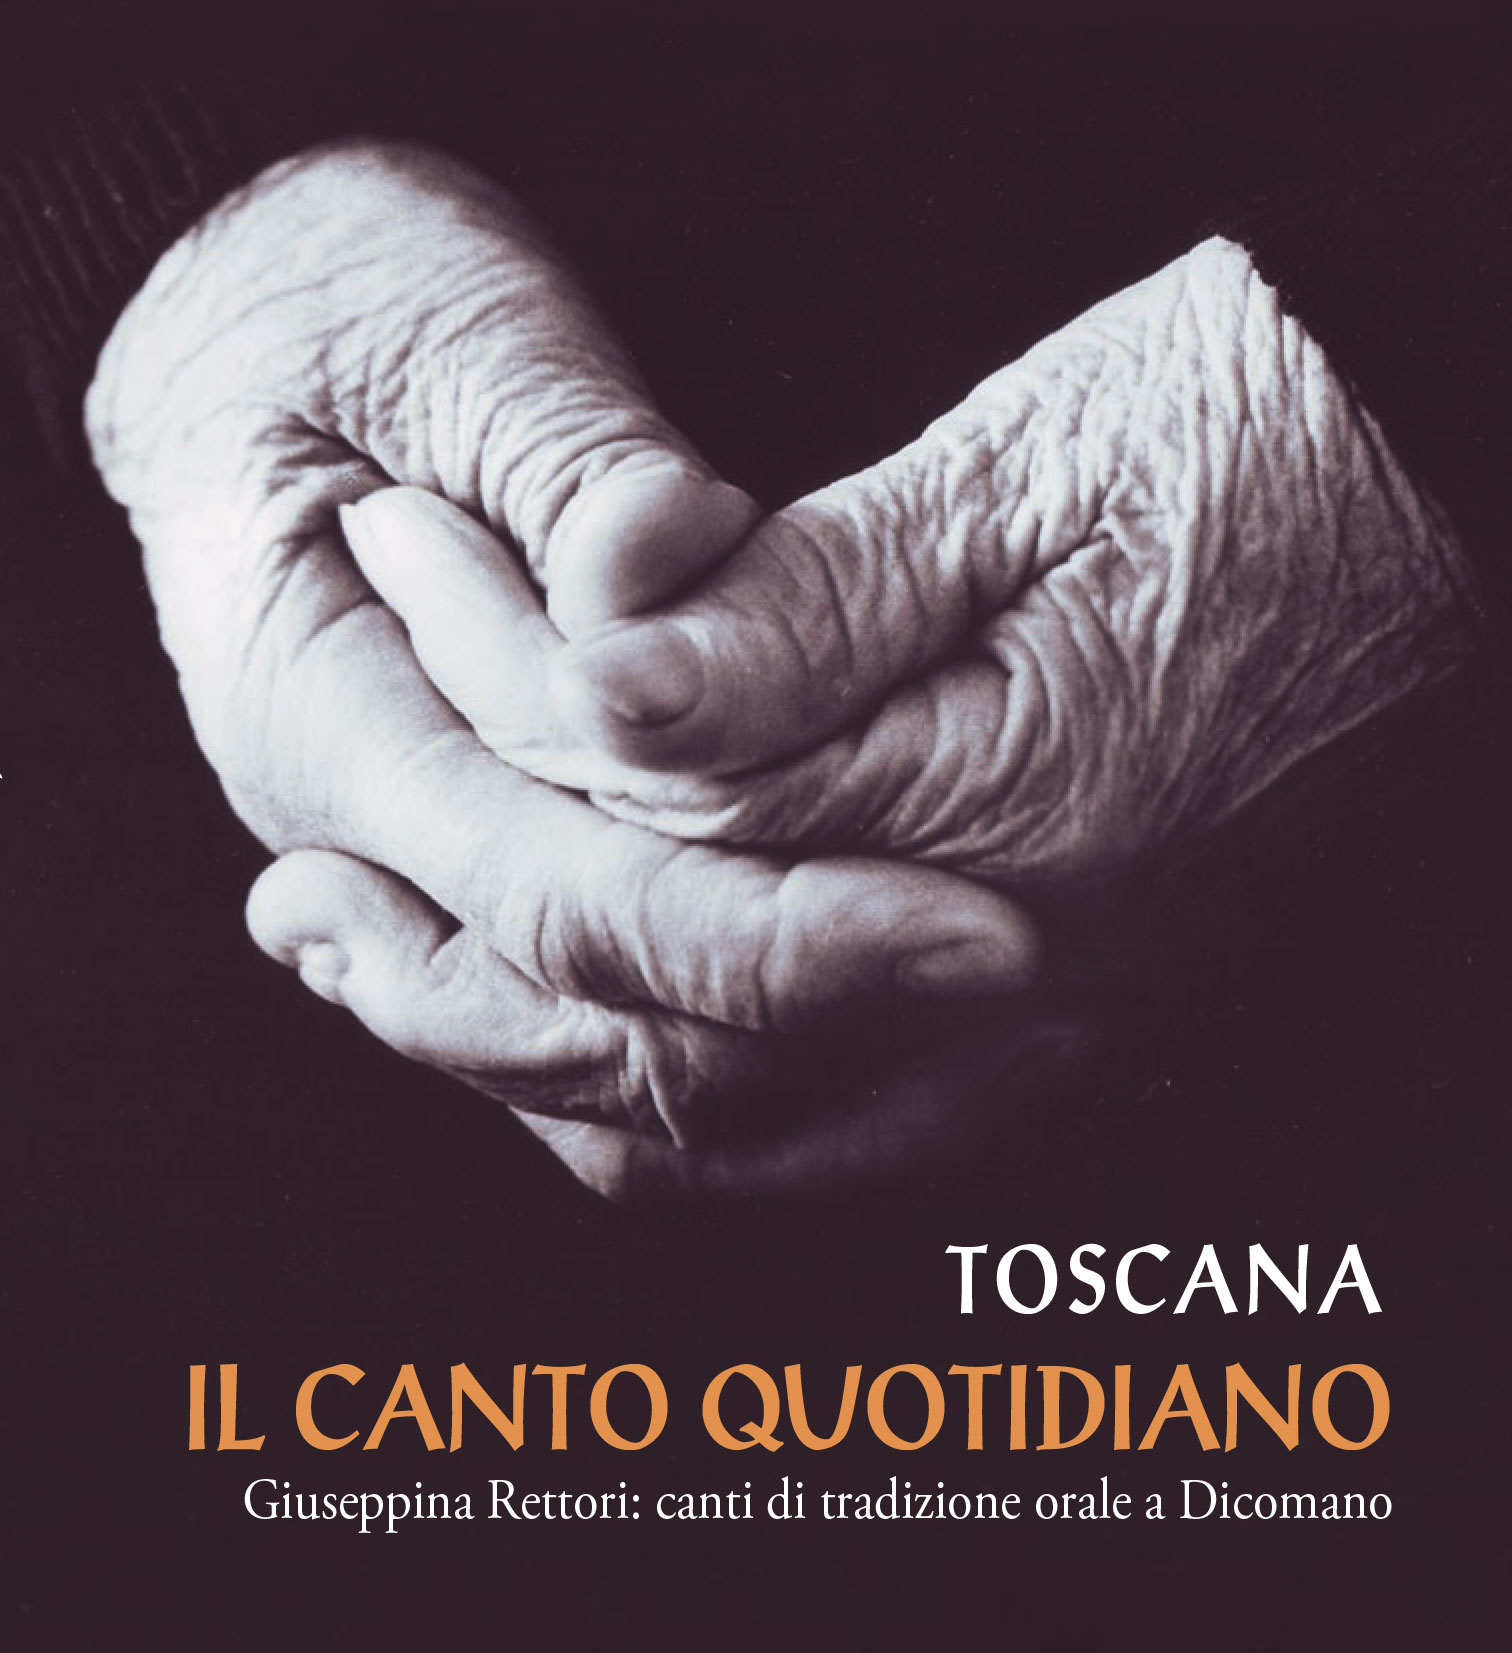 Canto quotidiano